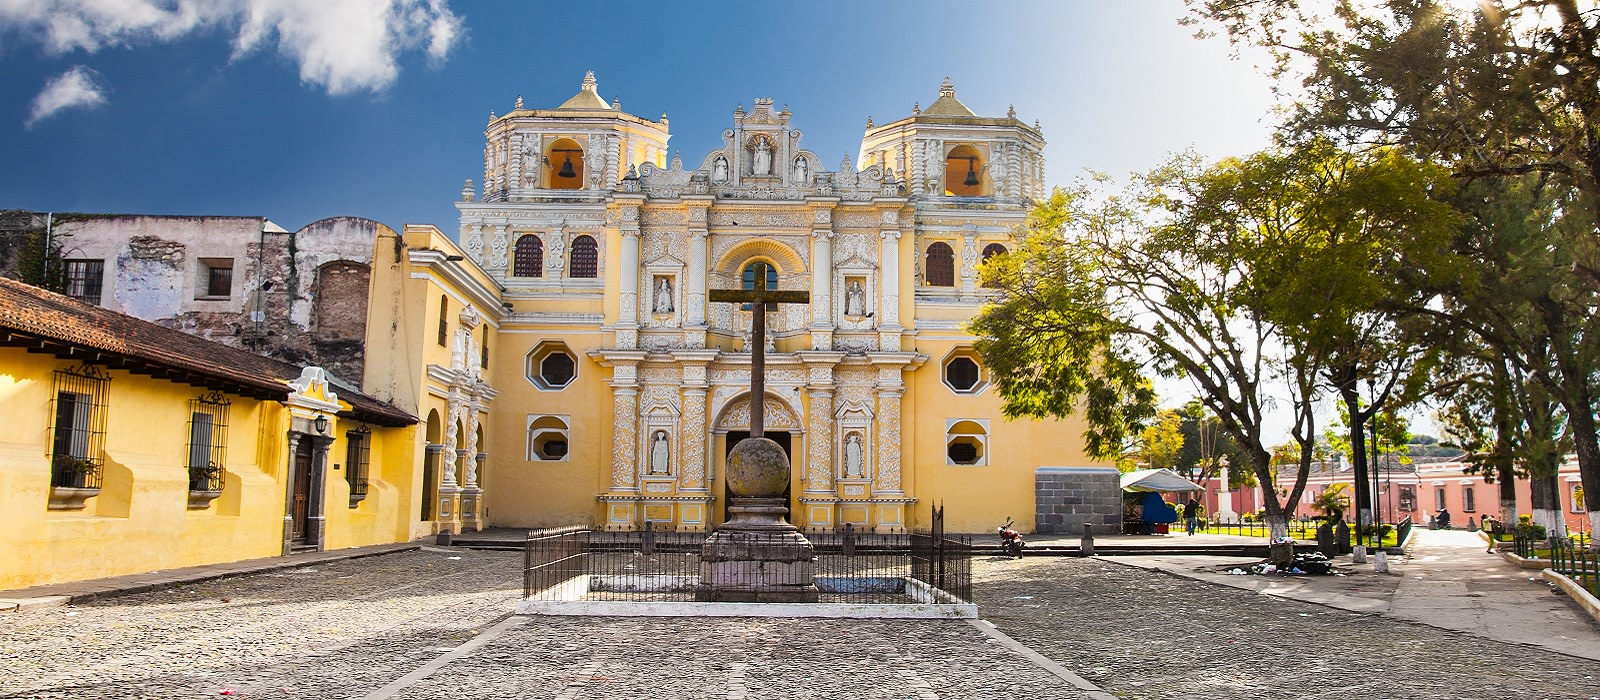 History of Guatemala - Enchanting Travels Guatemala Tours La Merced church in central park of Antigua